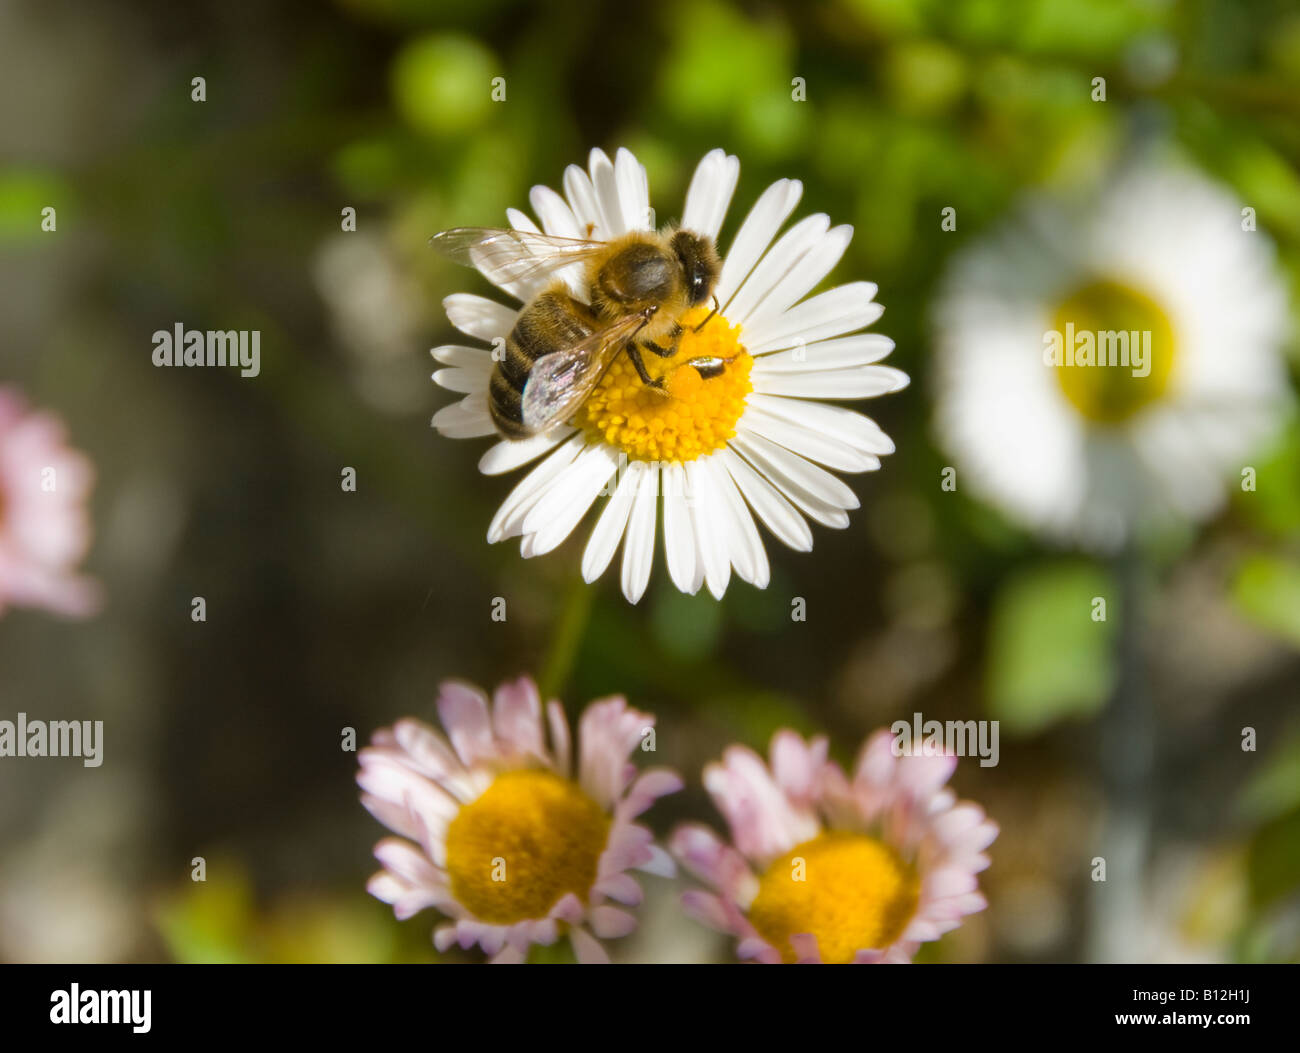 A Bee on a daisy flower collecting pollen - Stock Image